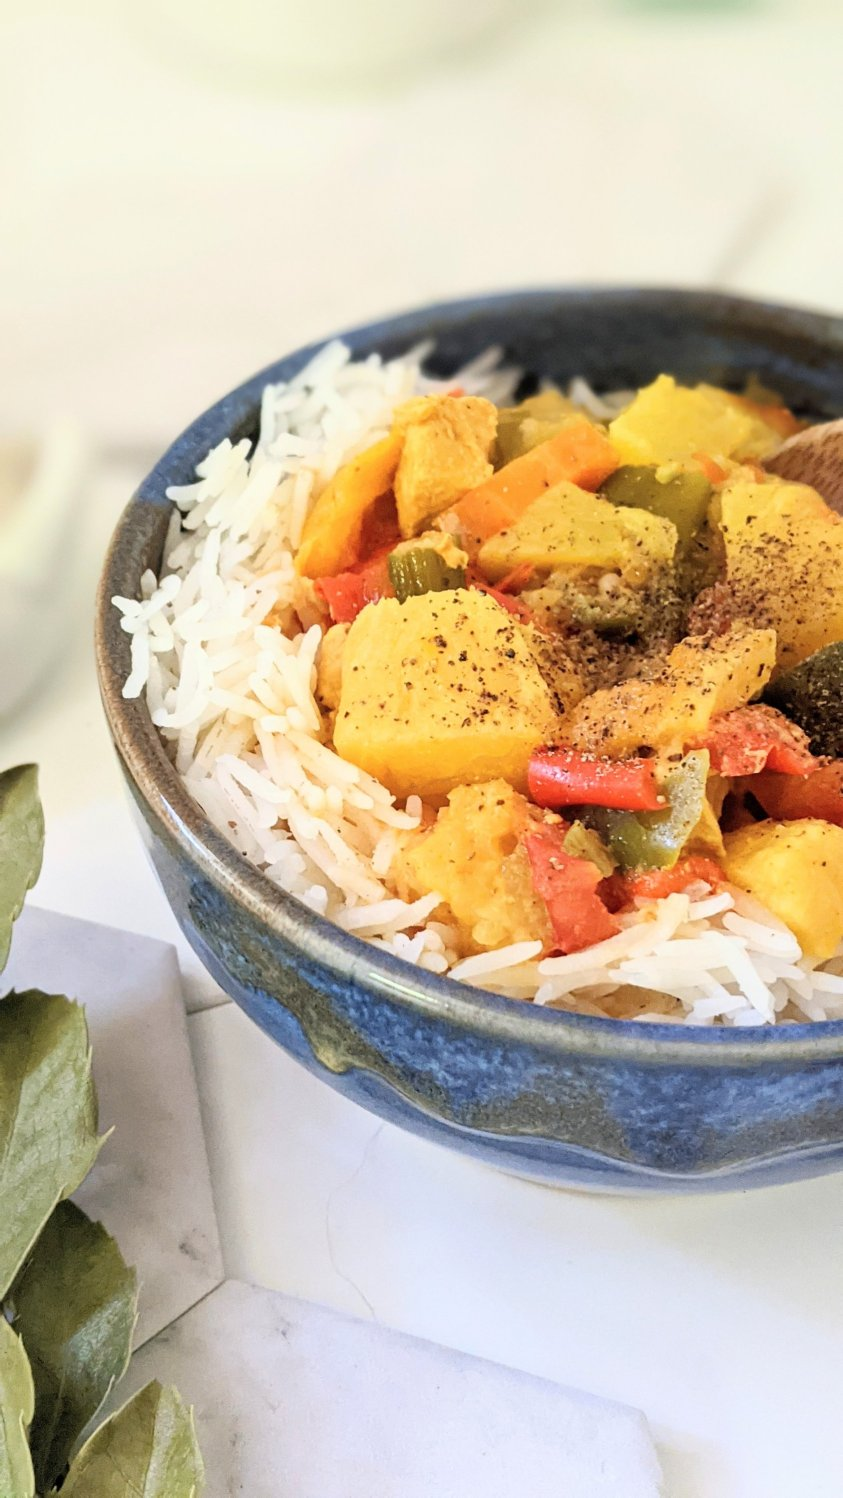 dairy free chicken pineapple curry recipe instant pot pressure cooker pineapple chicken curry meal prep recipes healthy chicken dinners to serve with rice gluten free vegetable curry with pineapple and best easy chicken breast recipes in pressure cooker